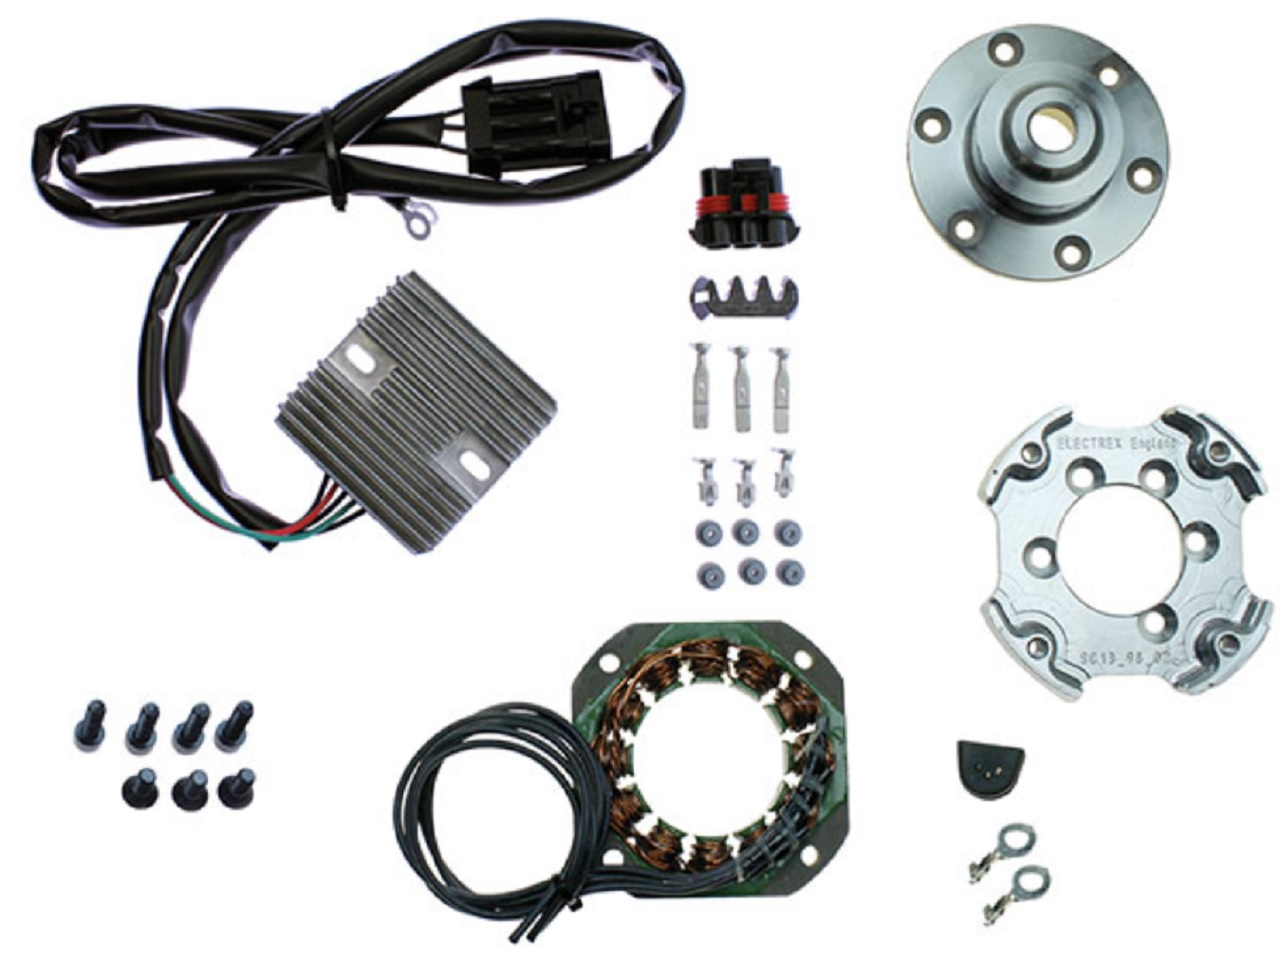 Suzuki GSXR600 yoshimura race alternator strator kit